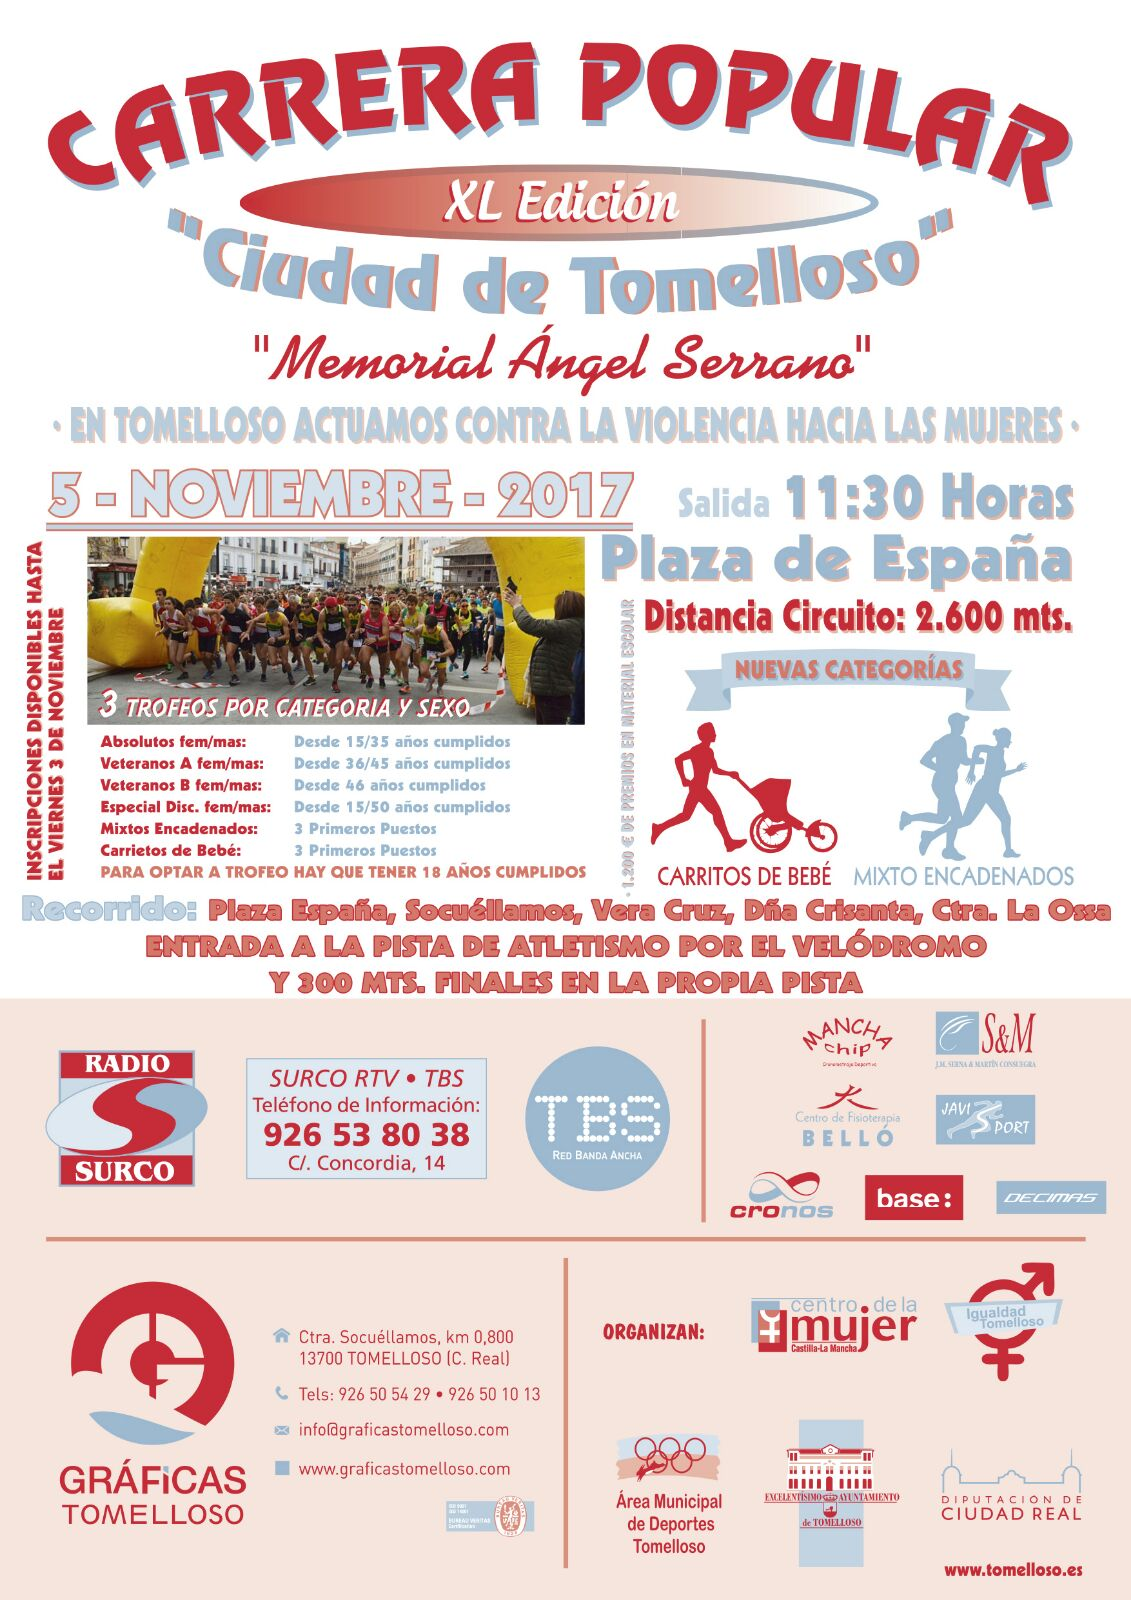 XL CARRERA POPULAR 2017